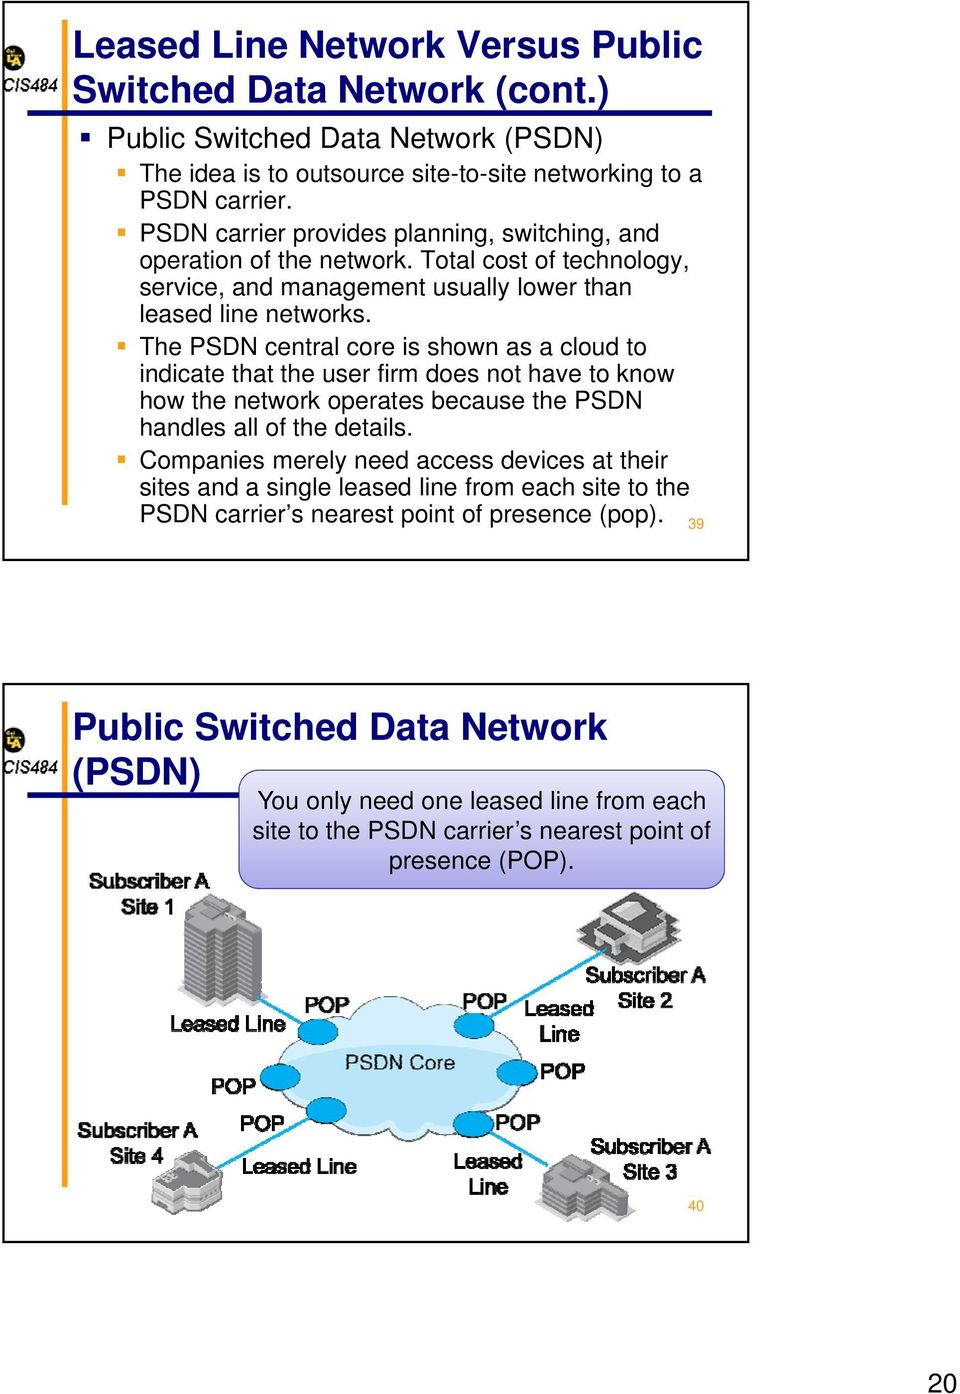 The PSDN central core is shown as a cloud to indicate that the user firm does not have to know how the network operates because the PSDN handles all of the details.